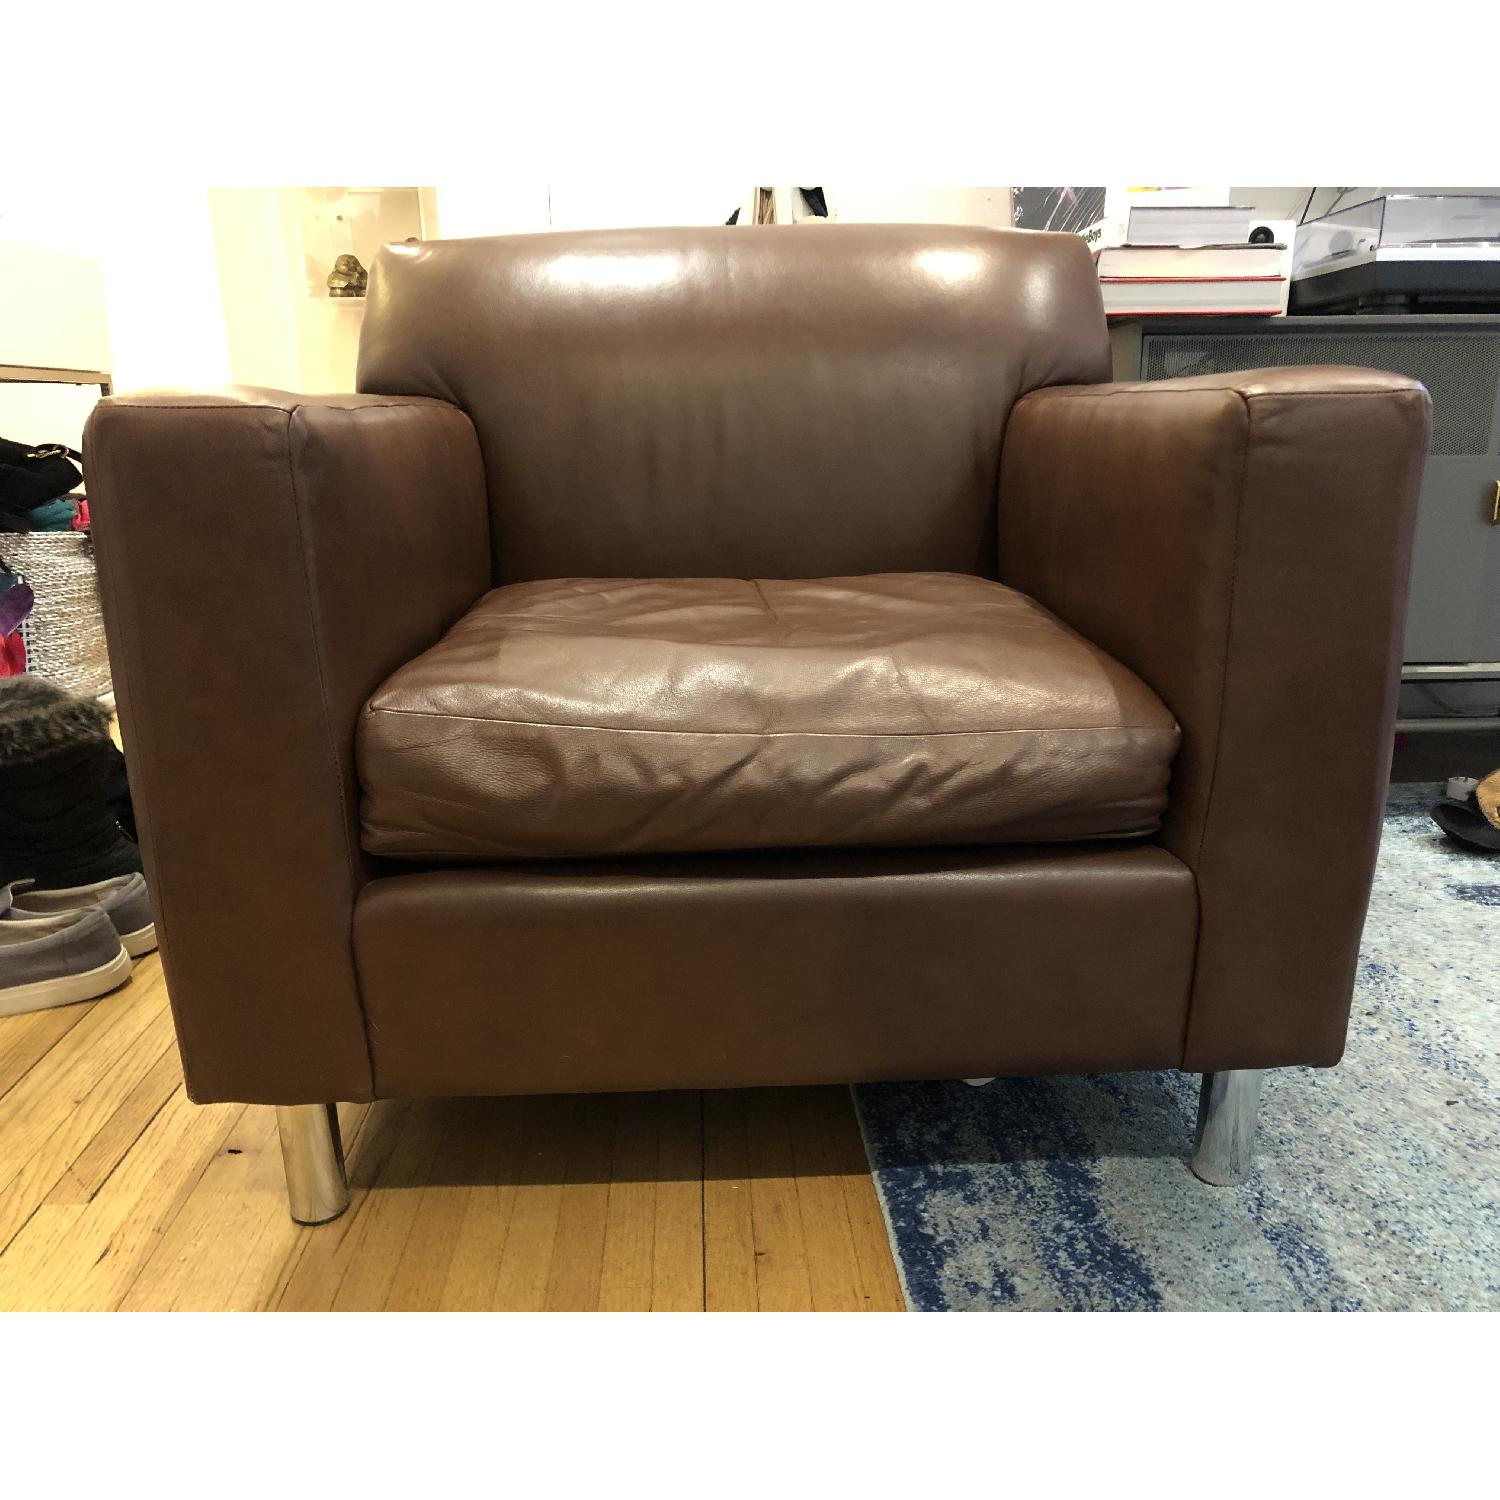 Room & Board Brown Leather Armchair-2